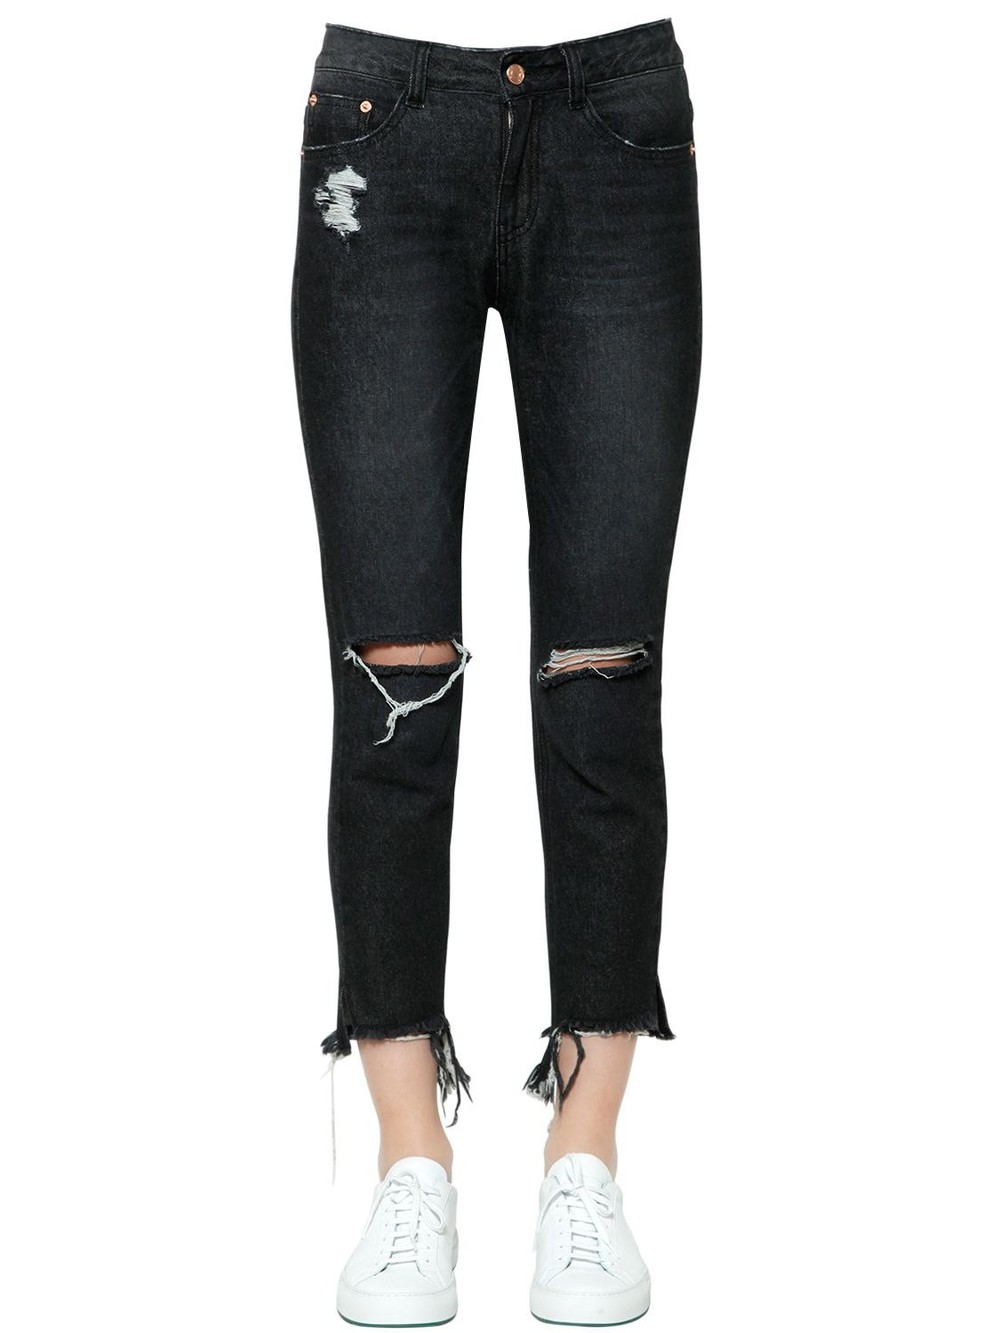 STEVE J & YONI P Destroyed Cotton Denim Jeans in black